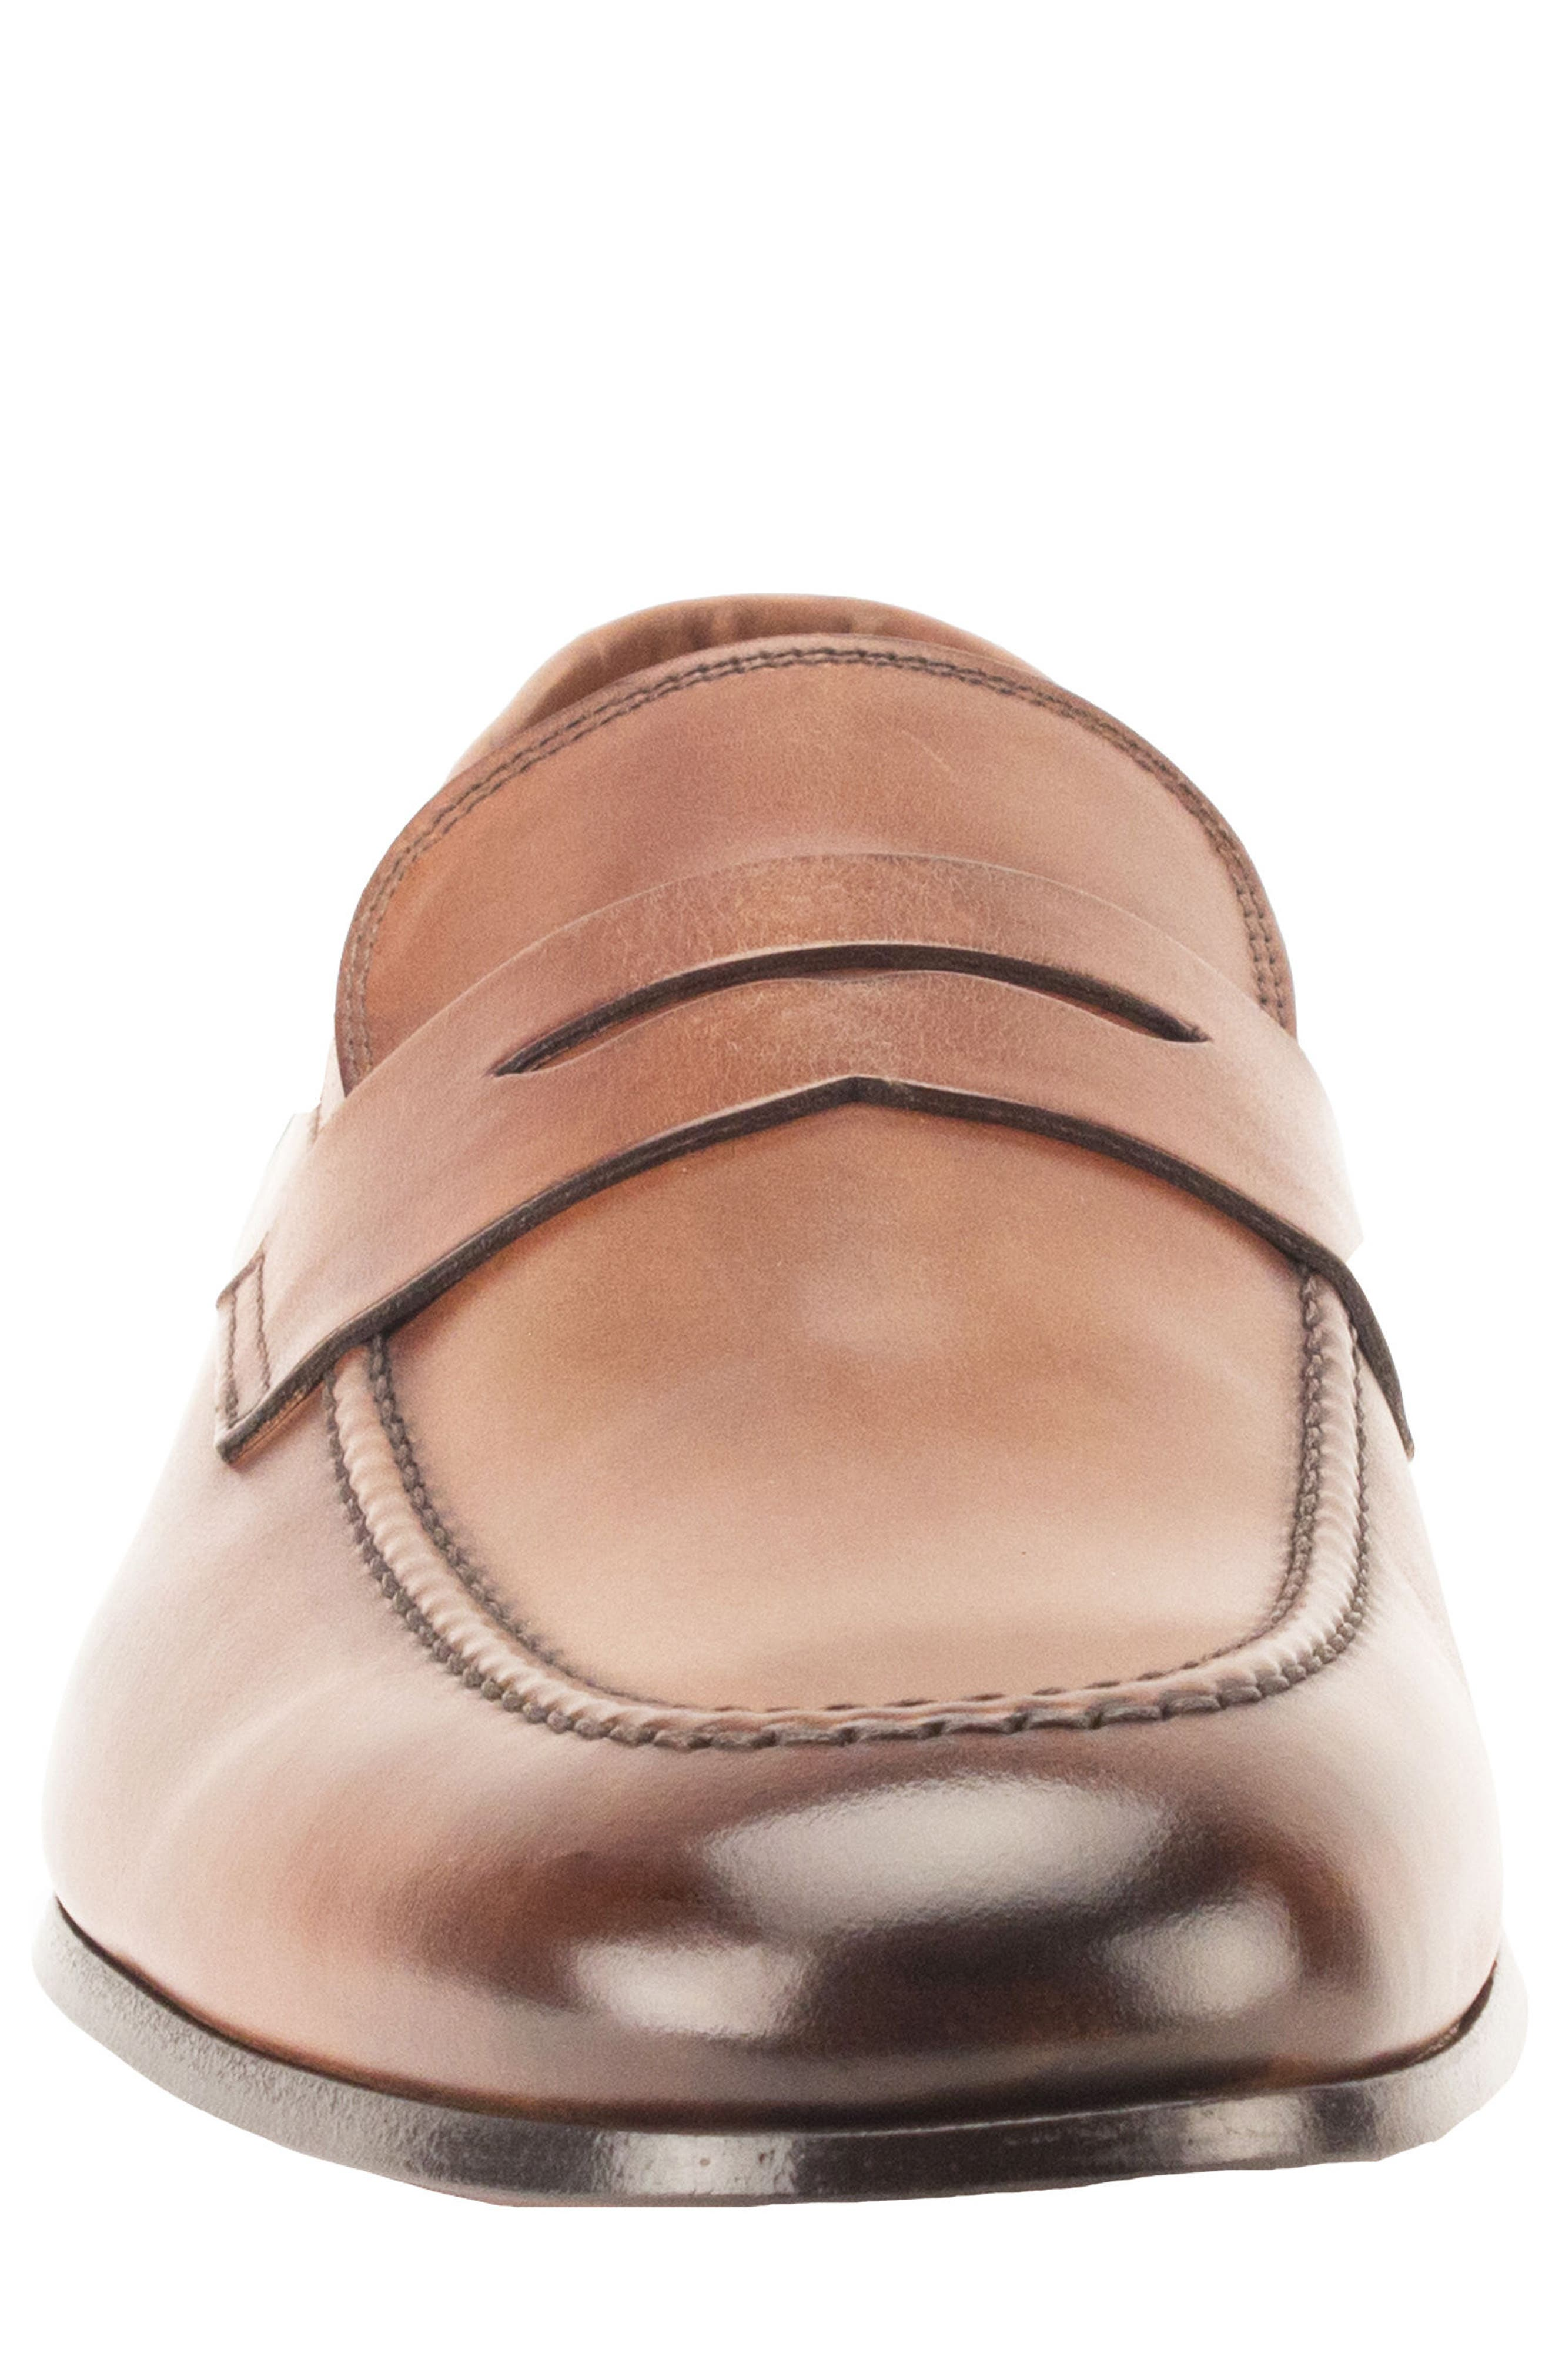 Coleman Apron Toe Penny Loafer,                             Alternate thumbnail 4, color,                             Tan Leather